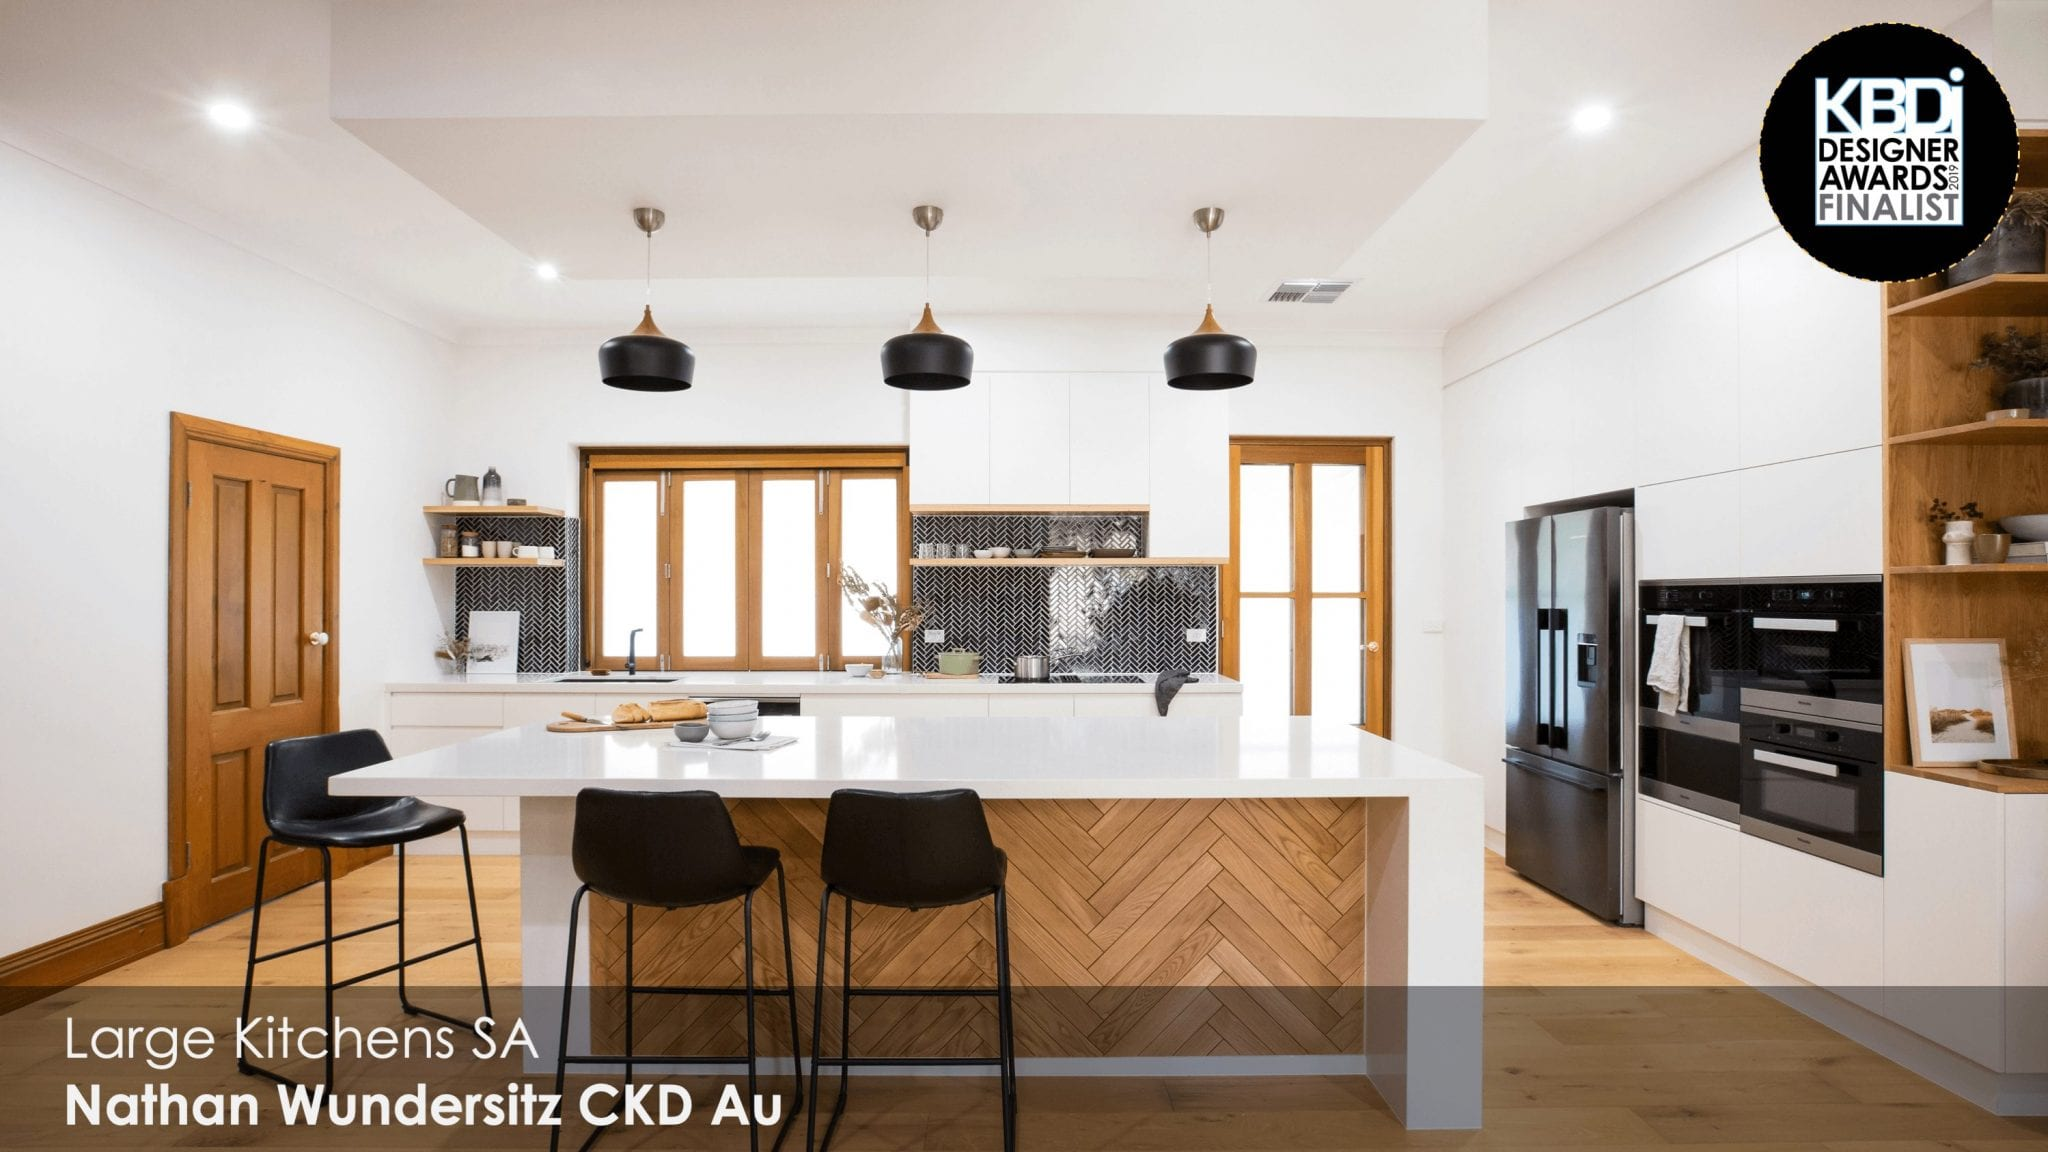 DA2019_Zigzag_Large Kitchens SA_Wundersitz copy